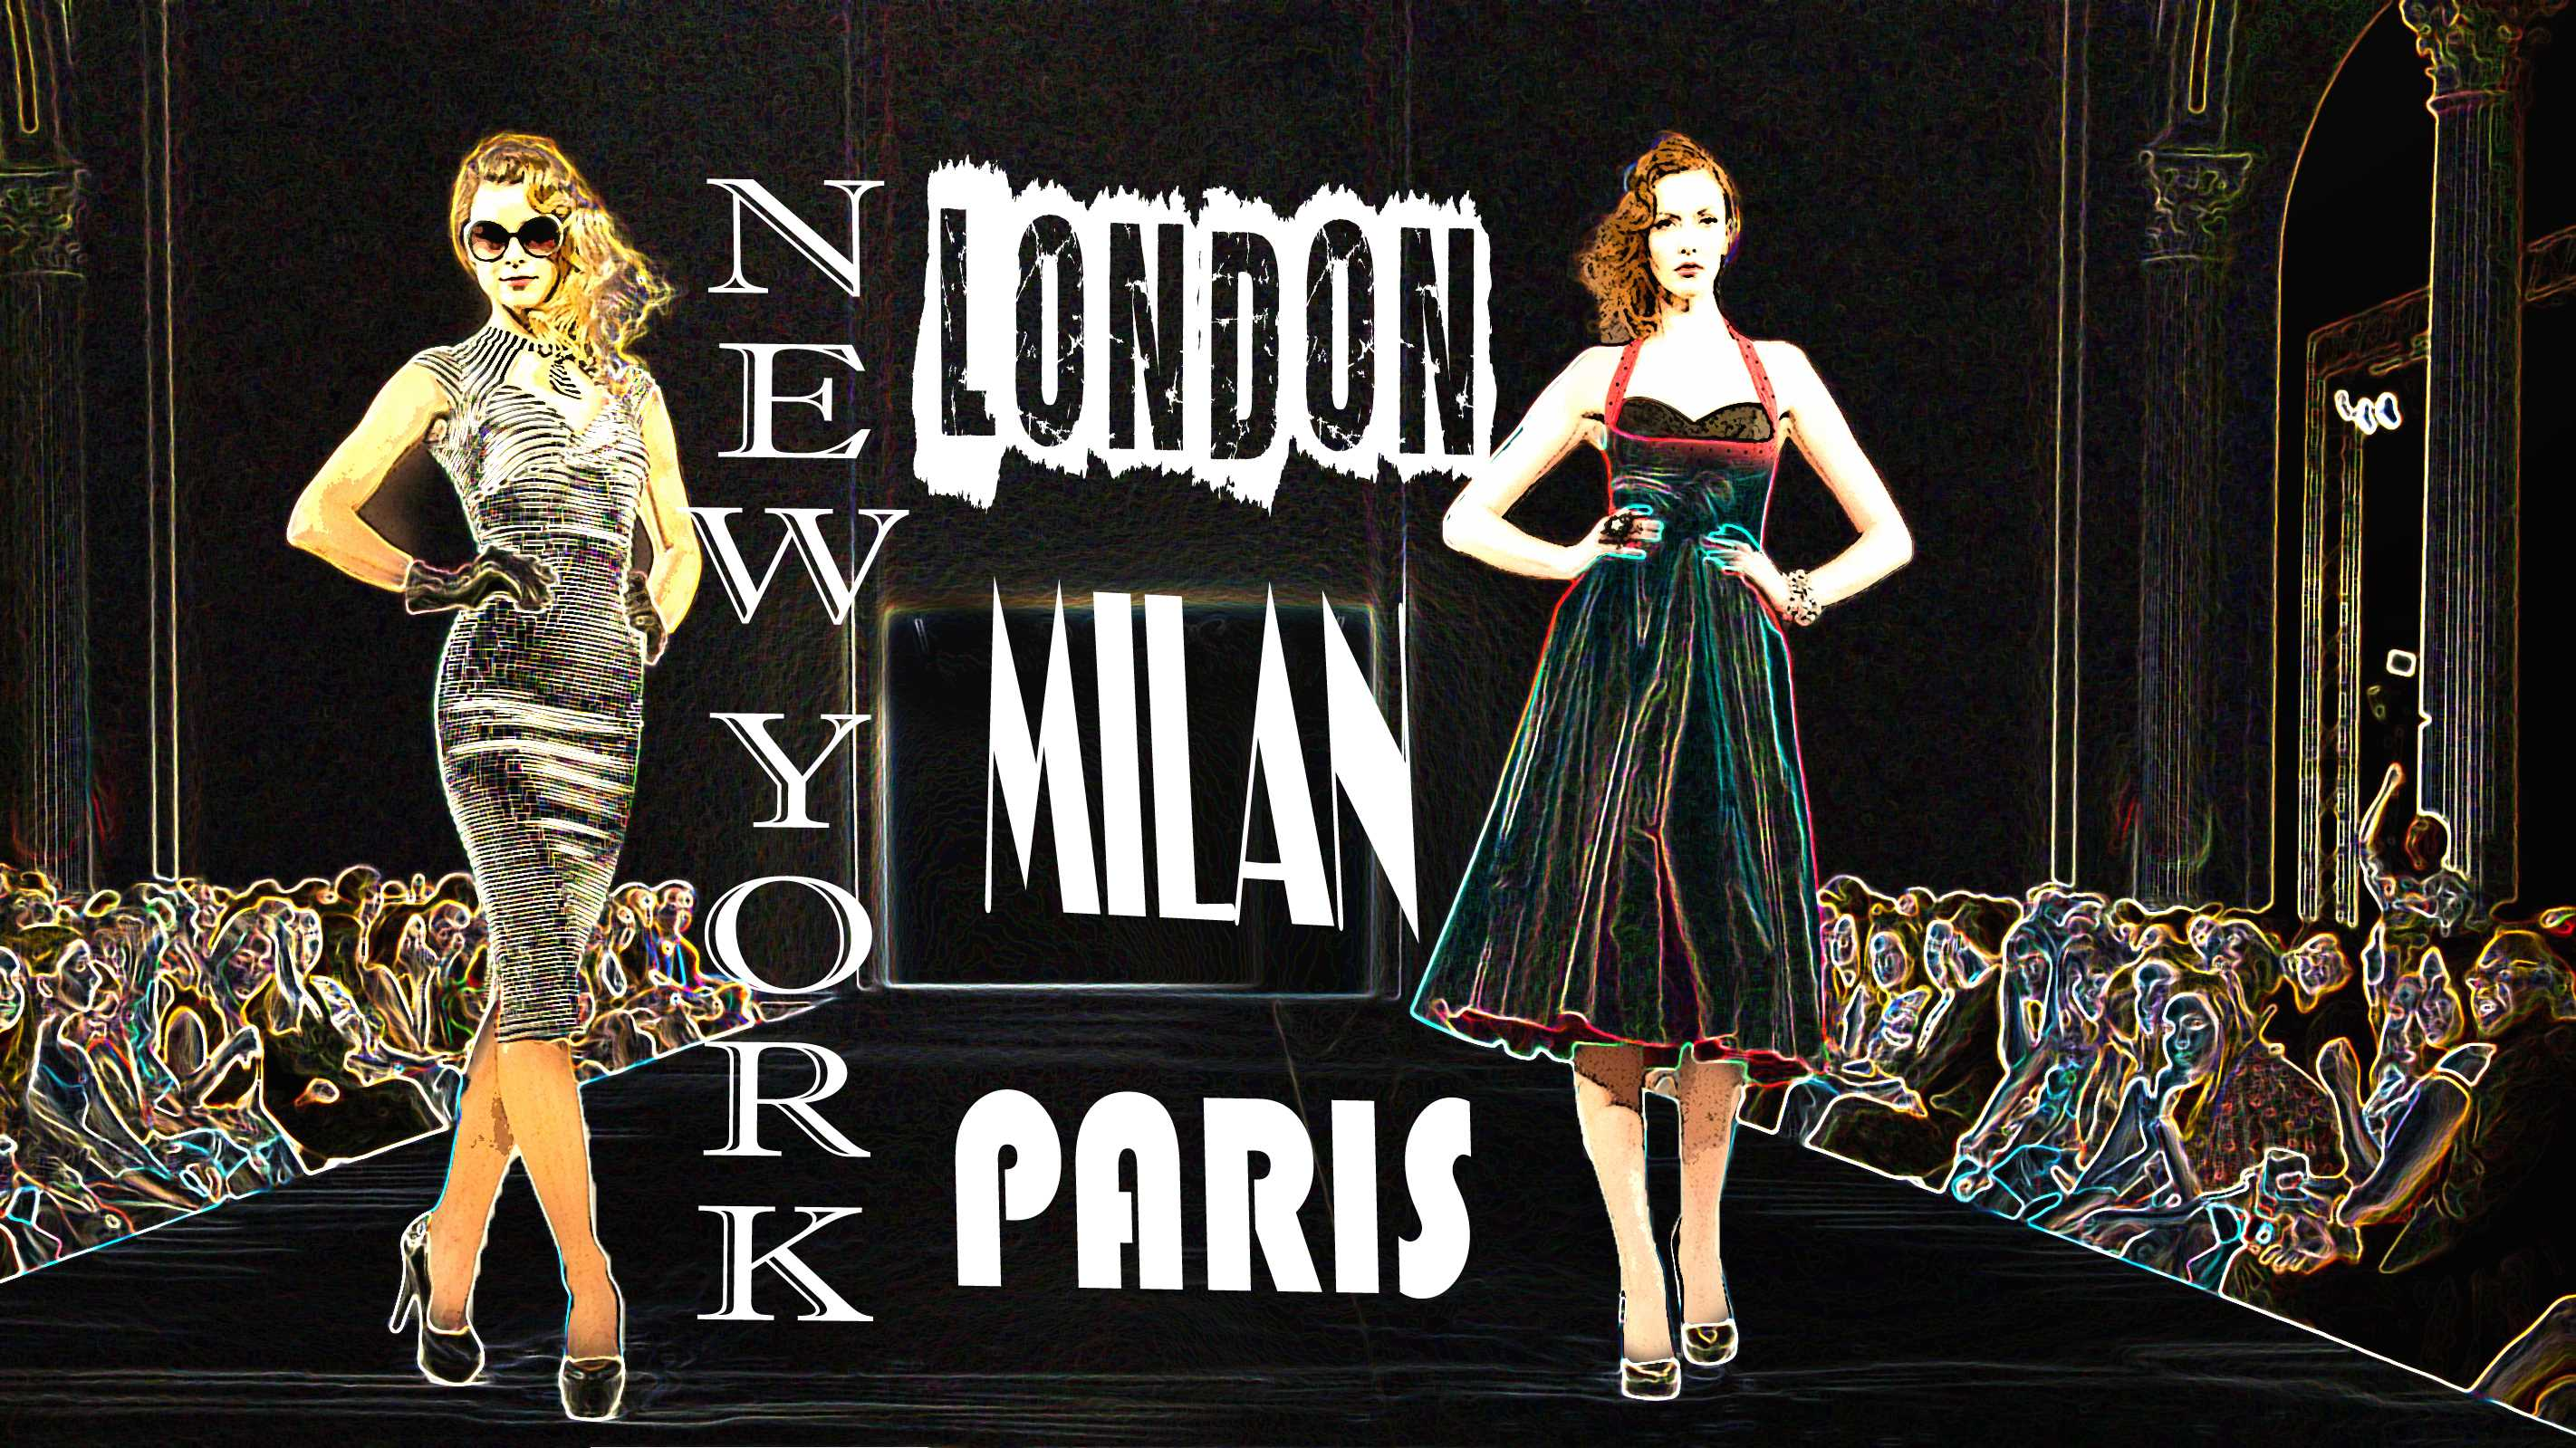 Image Wallpaper » Fashion Capital Of The World